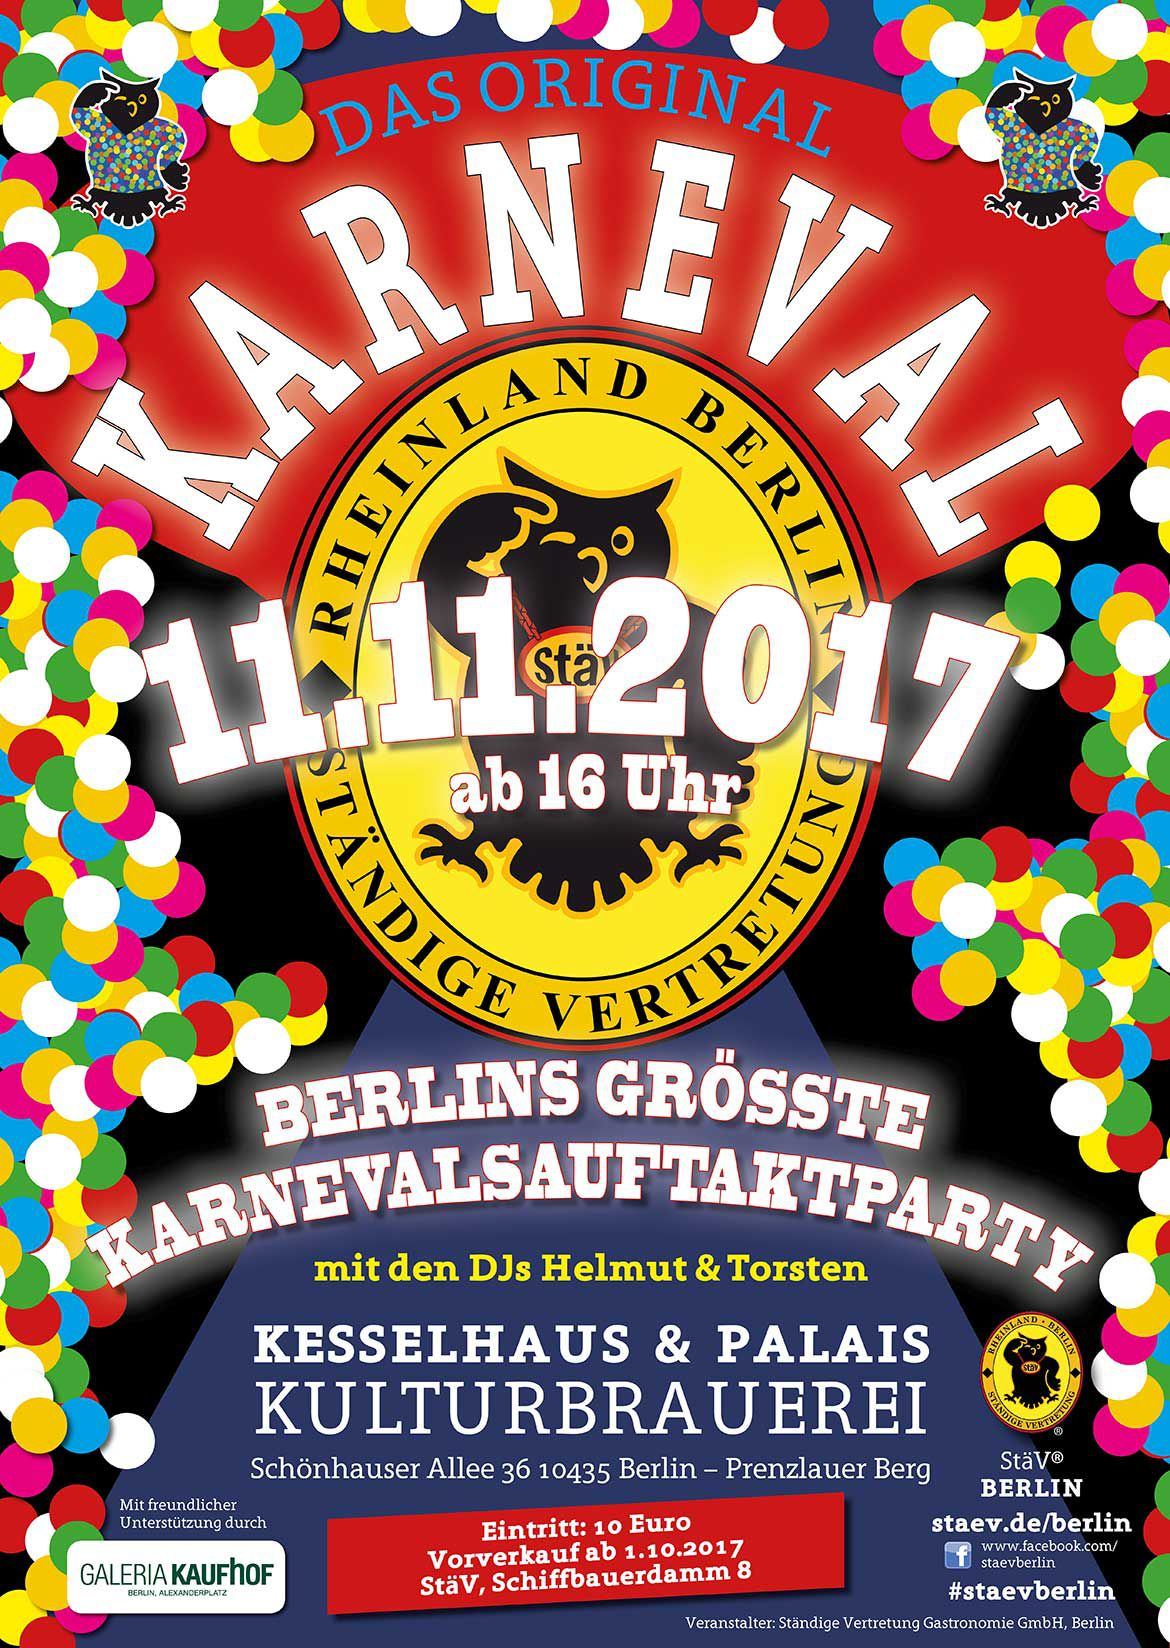 11.11.2017 Karneval in Berlin - Das Original